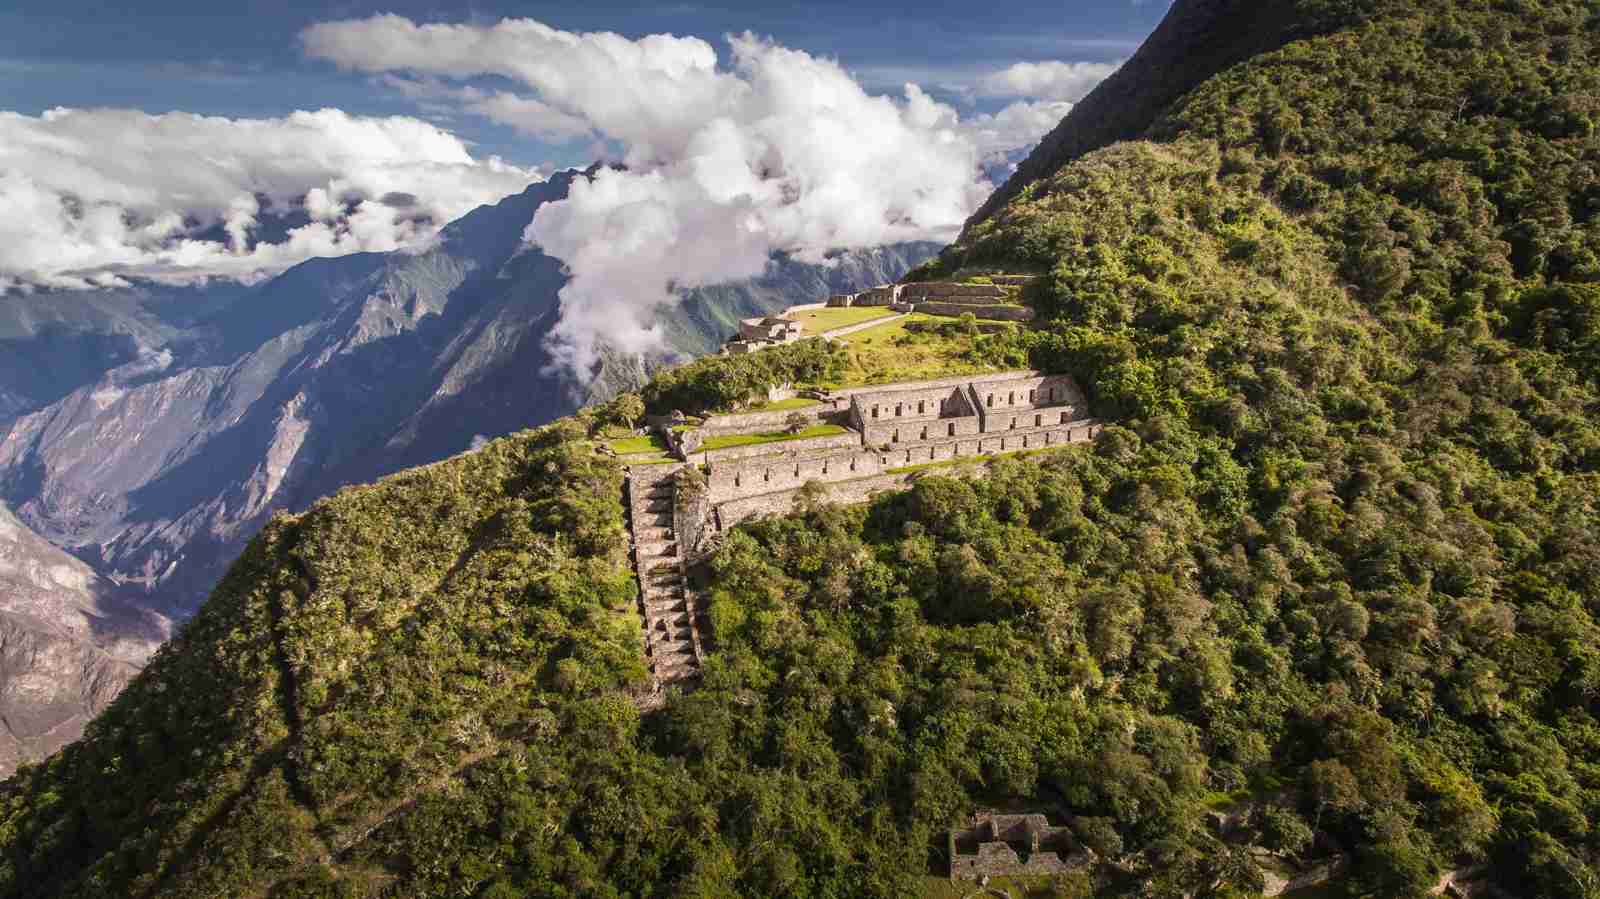 Choquequirao in Peru. (Photo by Crhistian Declercq/Getty Images)